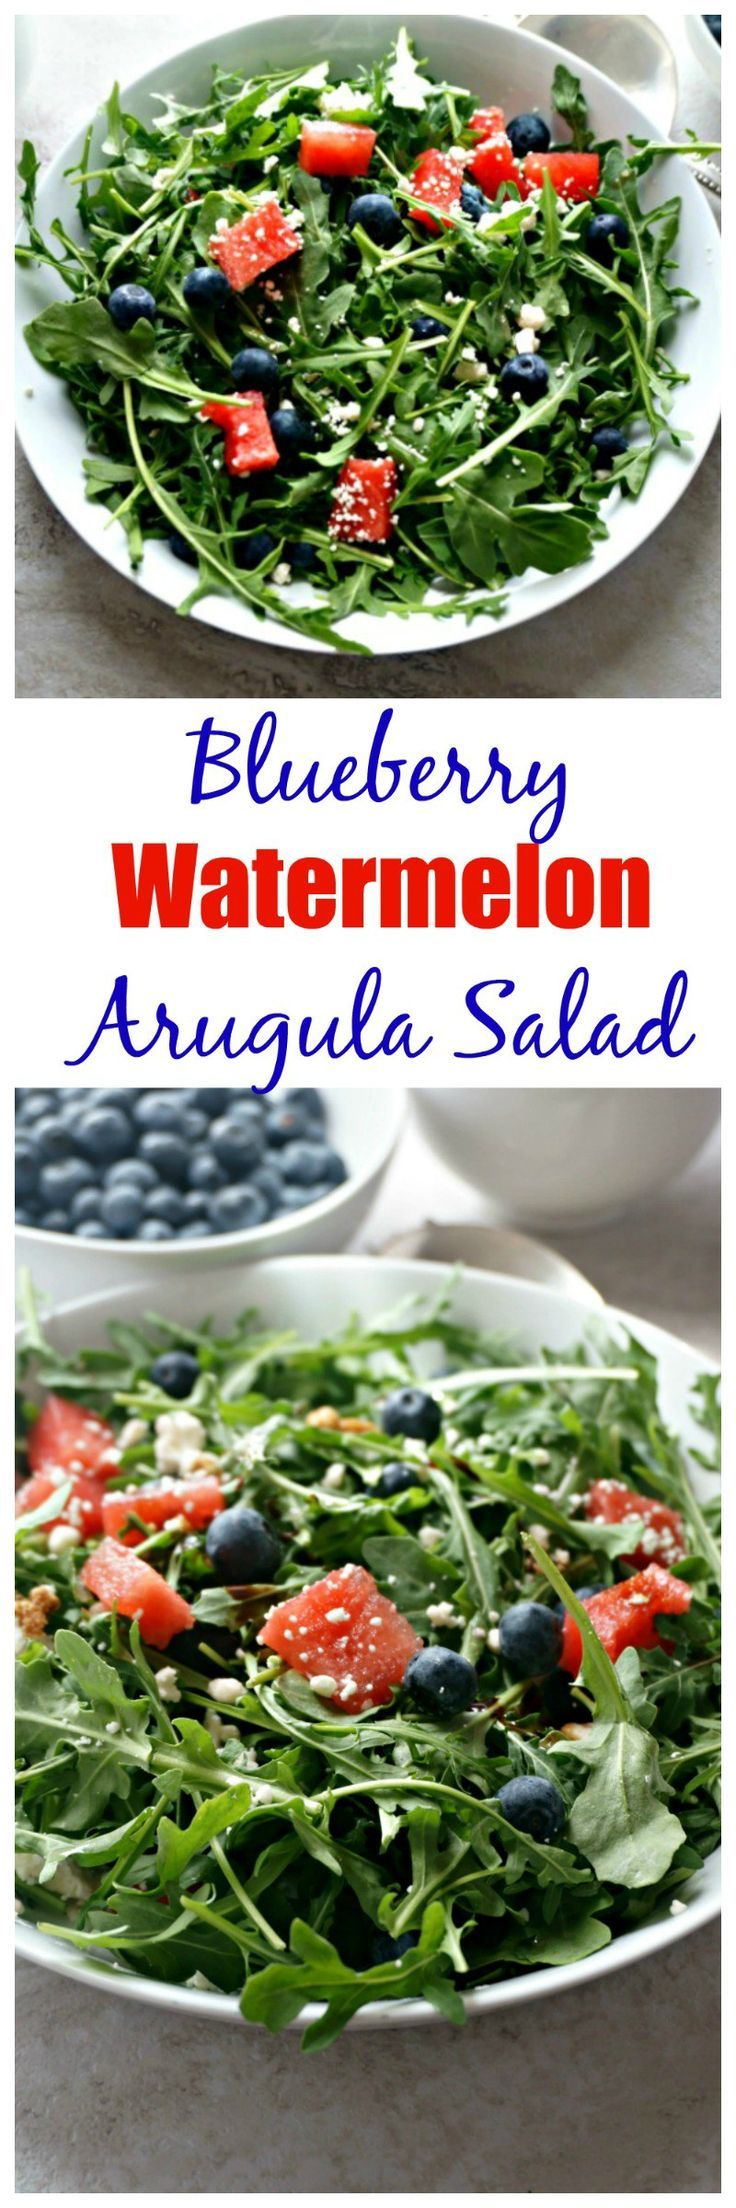 Blueberry and Watermelon Arugula Salad: Peppery tender arugula is tossed with sweet watermelon, juicy blueberries, salty feta cheese, and finished with a balsamic glaze for one flavorful, festive salad. #SundaySupper